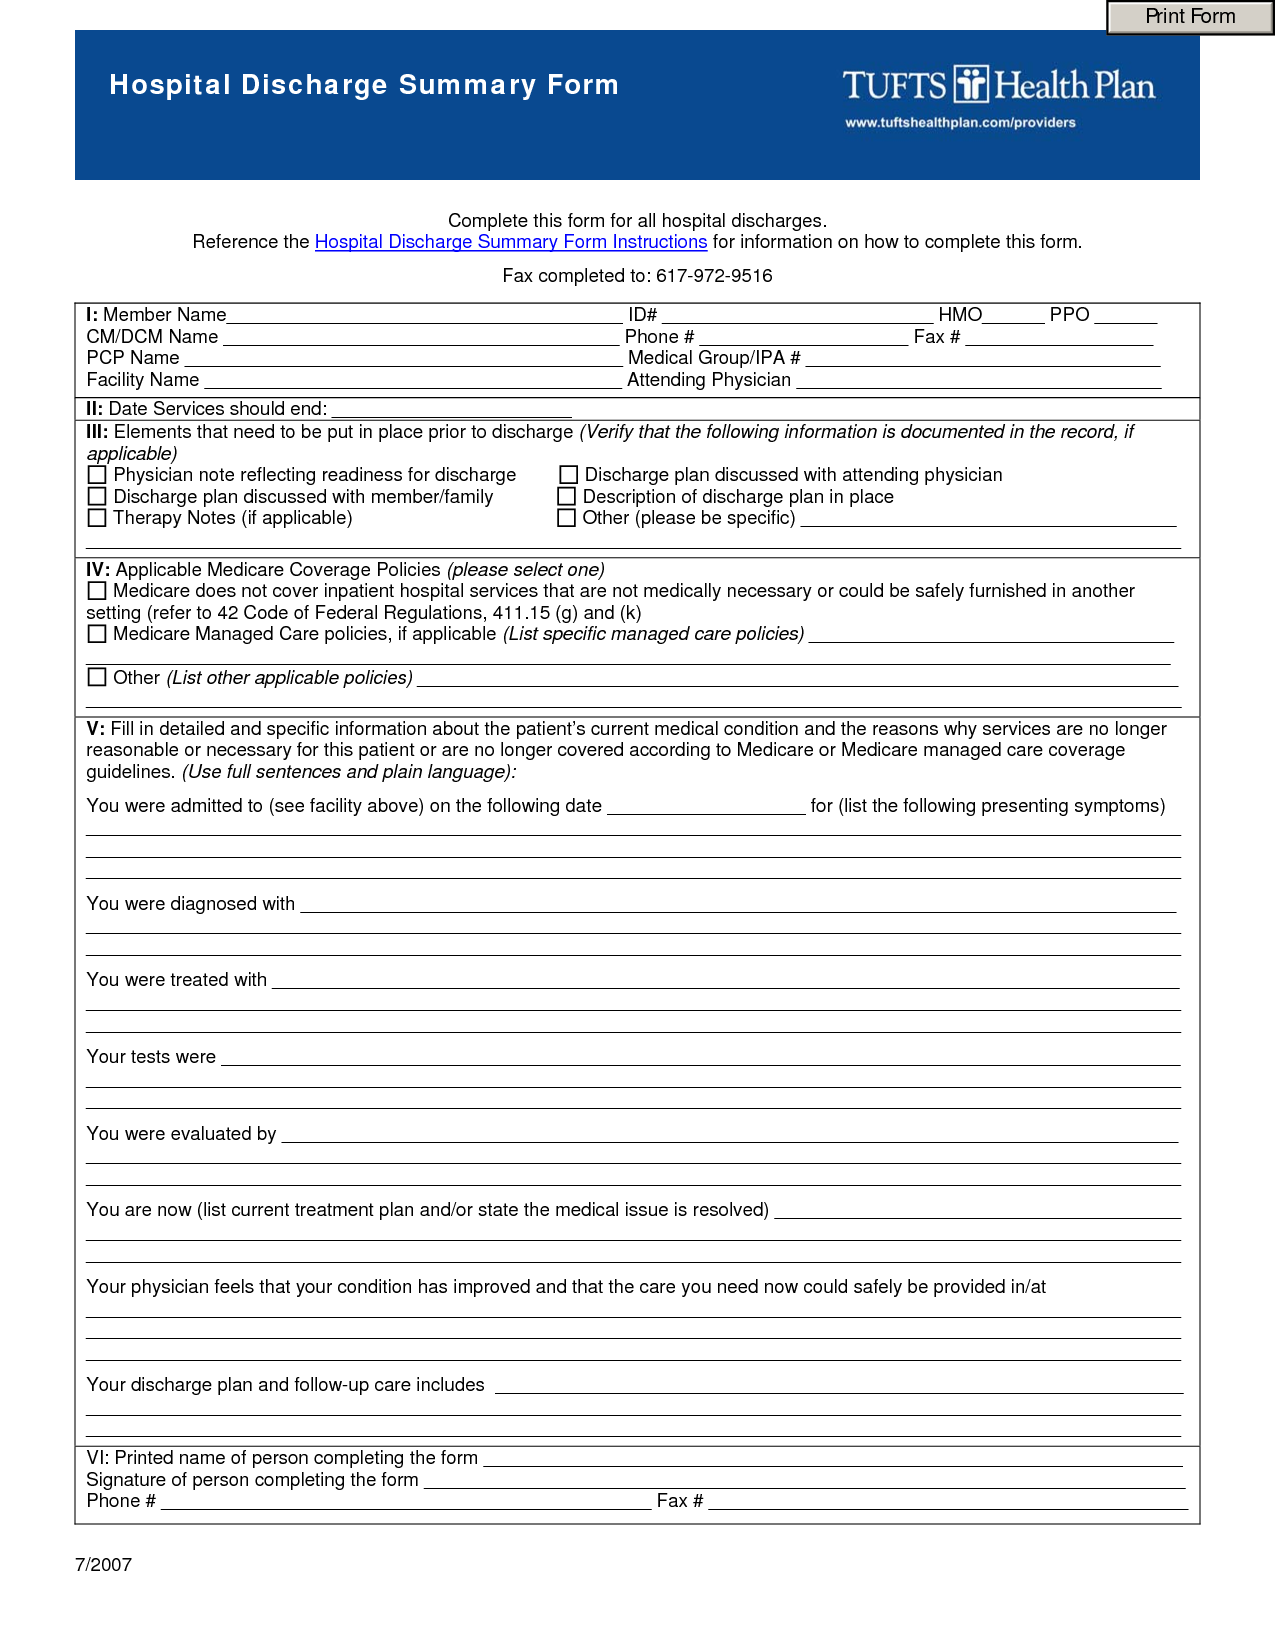 Sample Hospital Discharge Forms Doctors Note Template Doctors